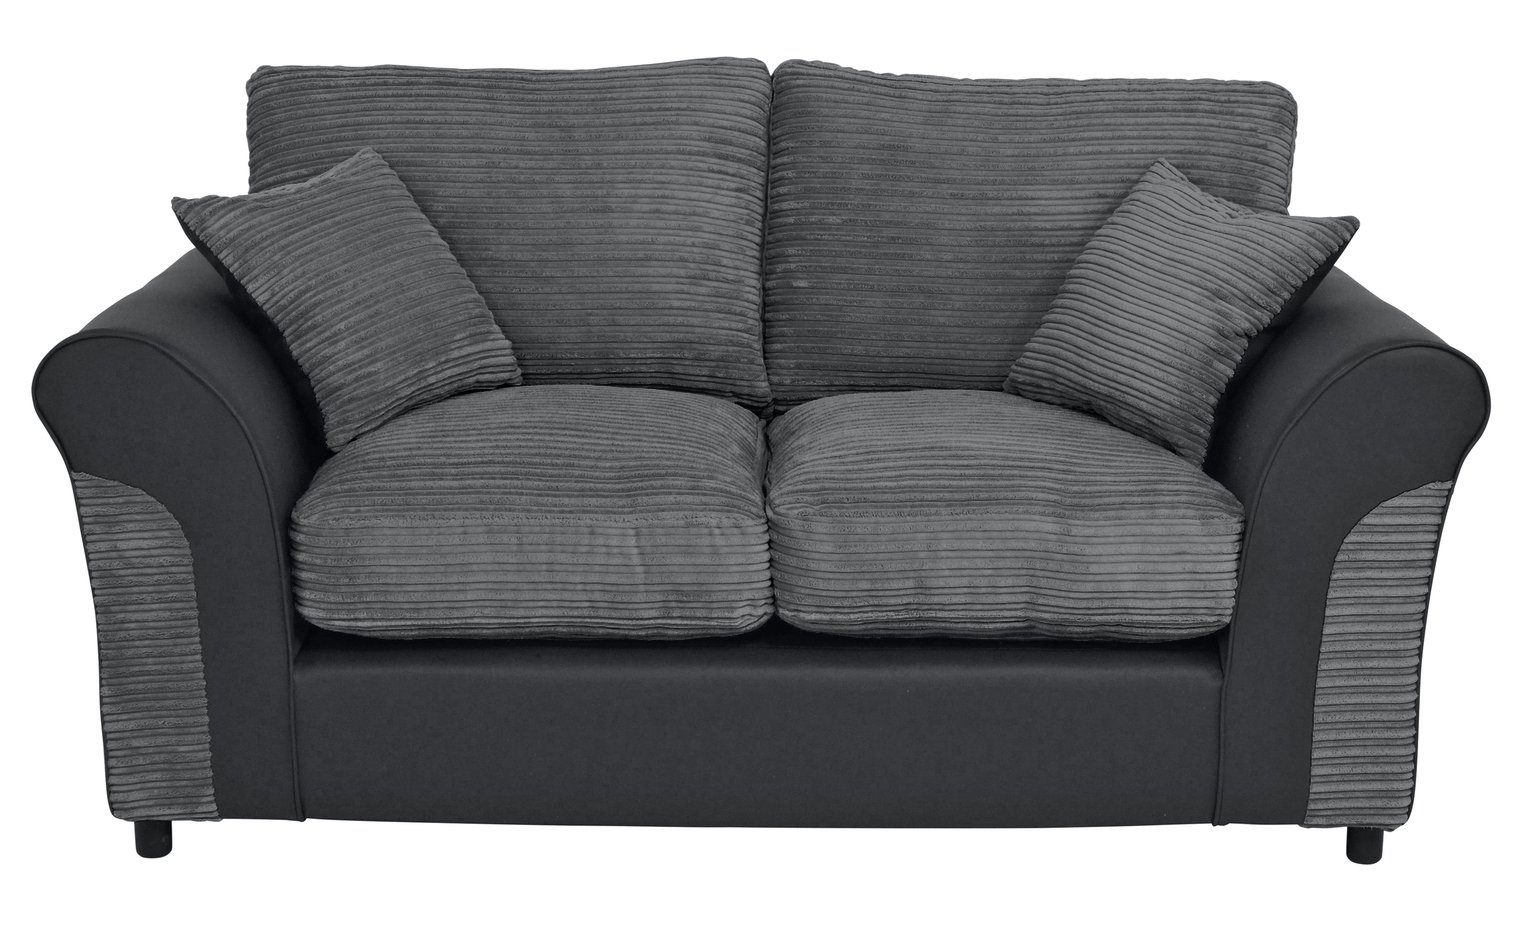 Argos Home Harry 2 Seater Fabric Sofabed - Charcoal